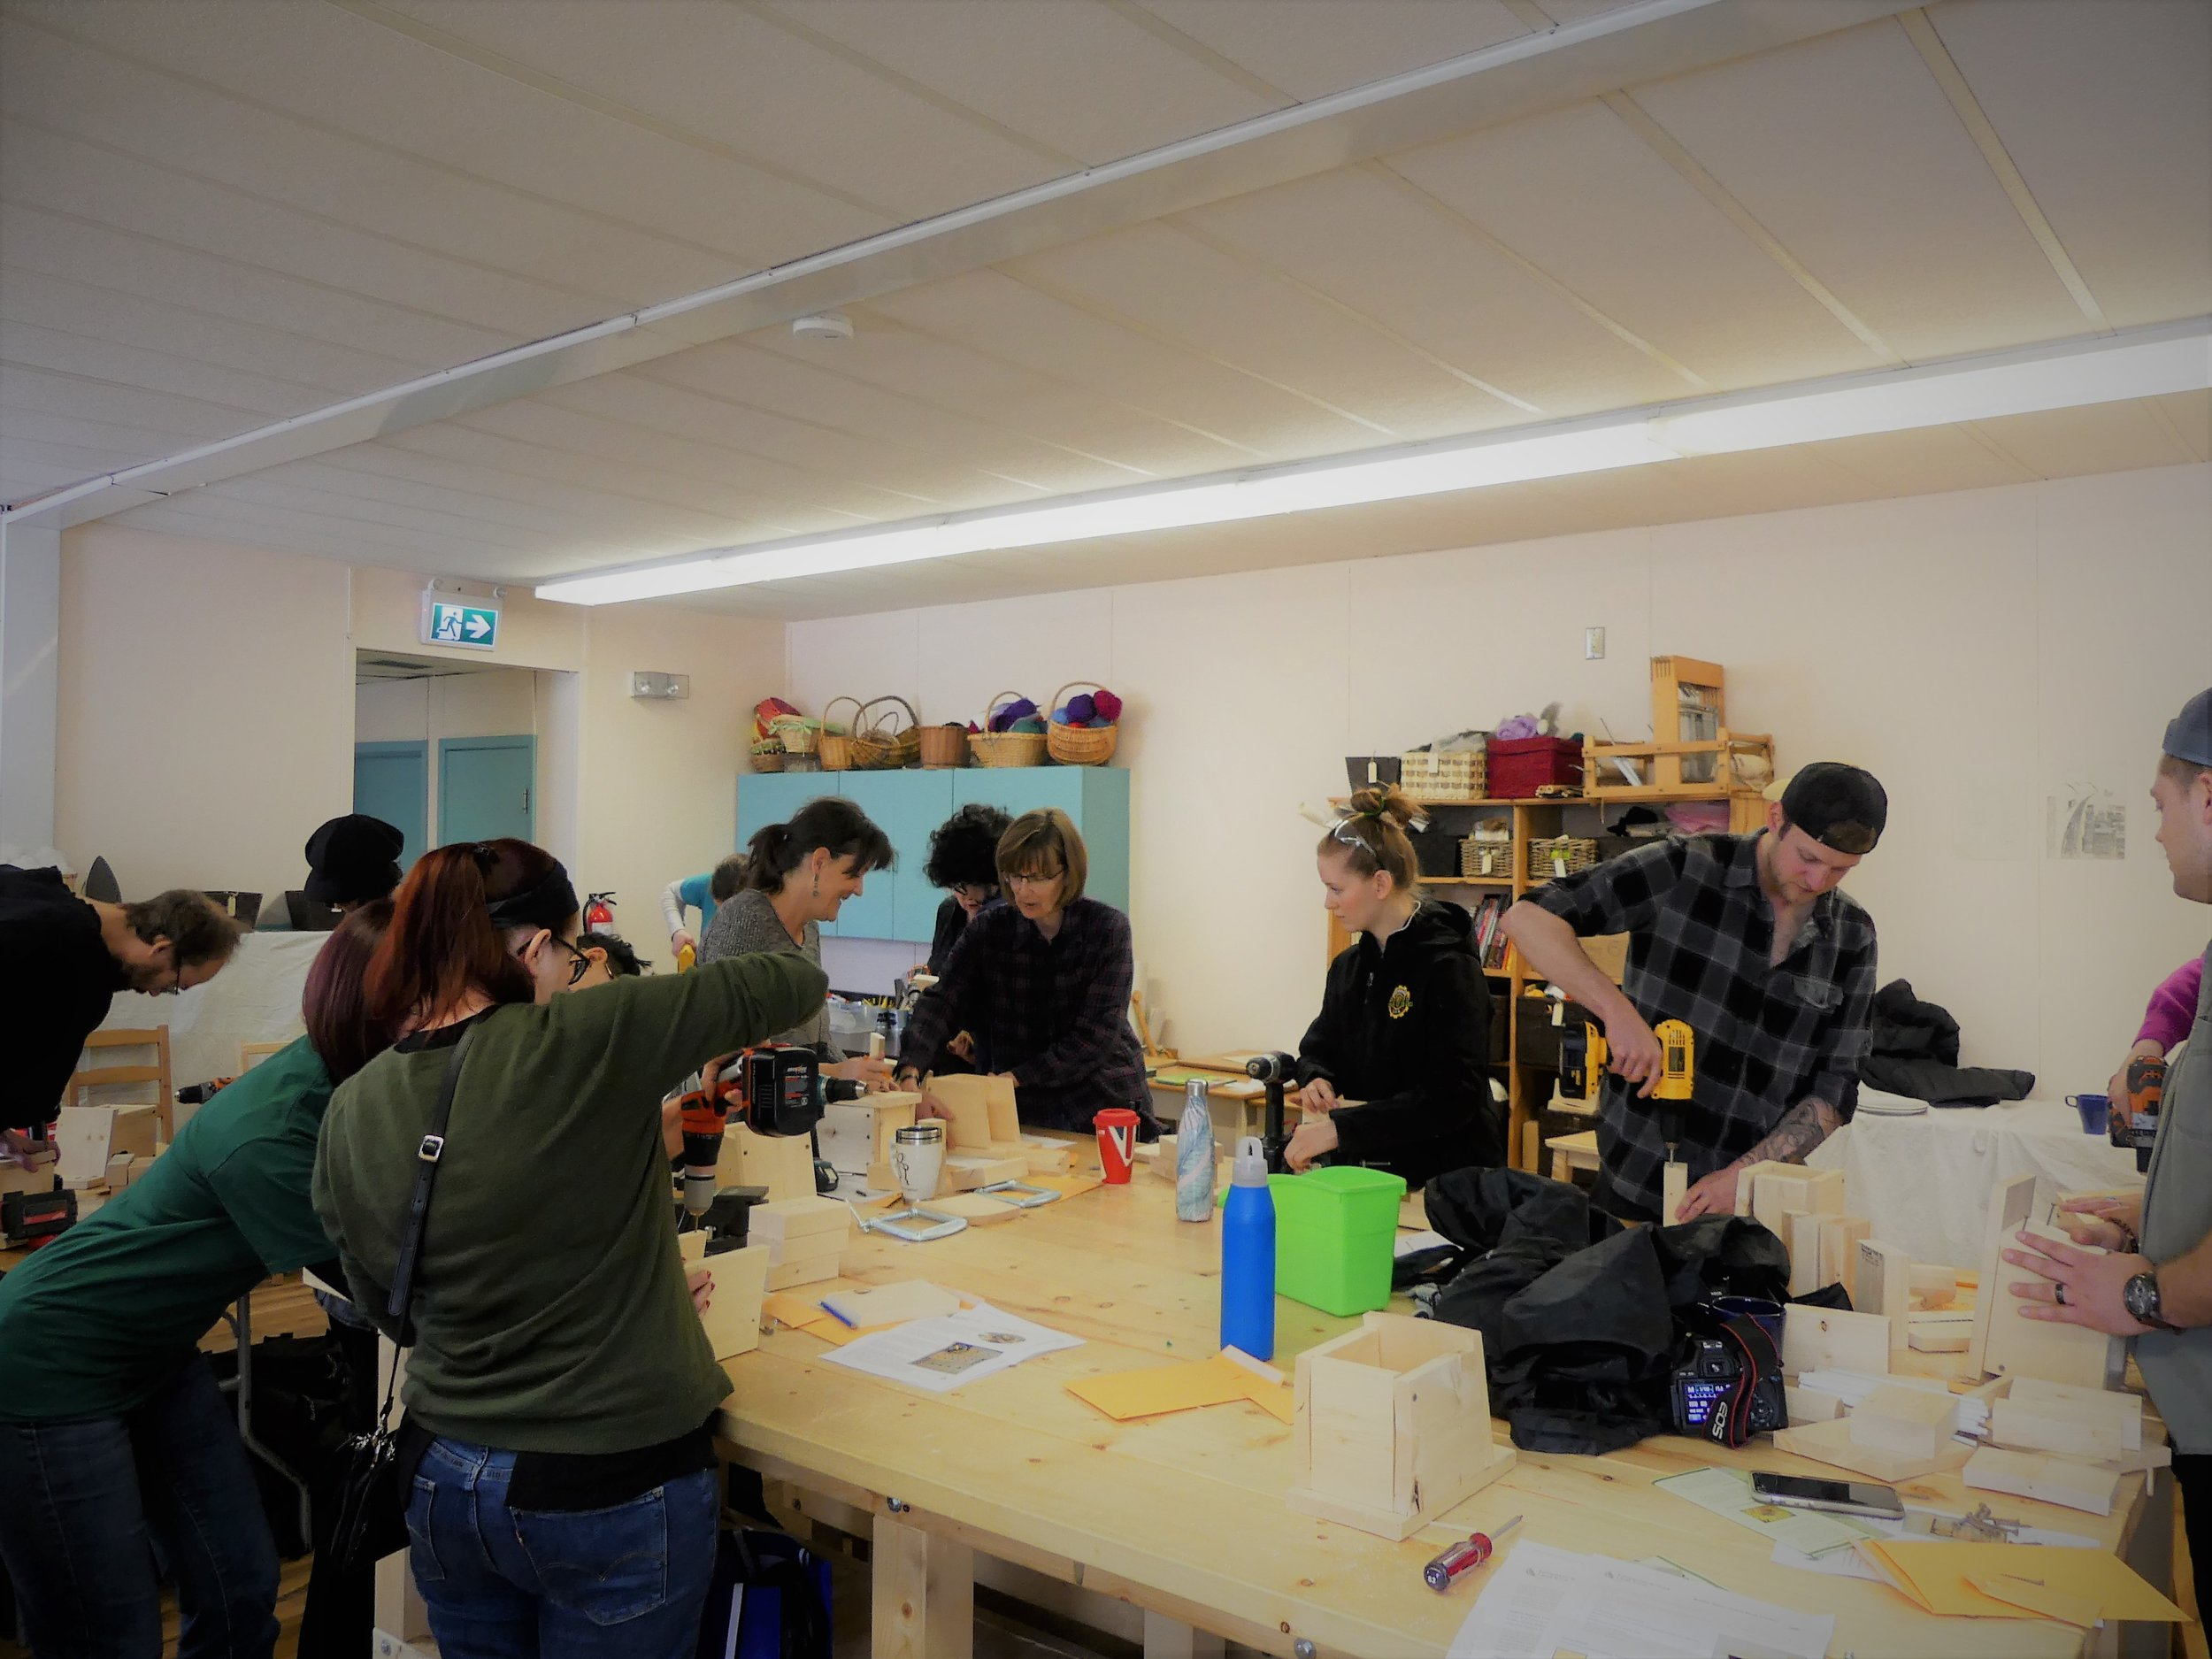 EALT hosted a bee hotel workshop at the 2019 Edmonton Resilience Festival to teach people how they can help native pollinators in their own backyards.